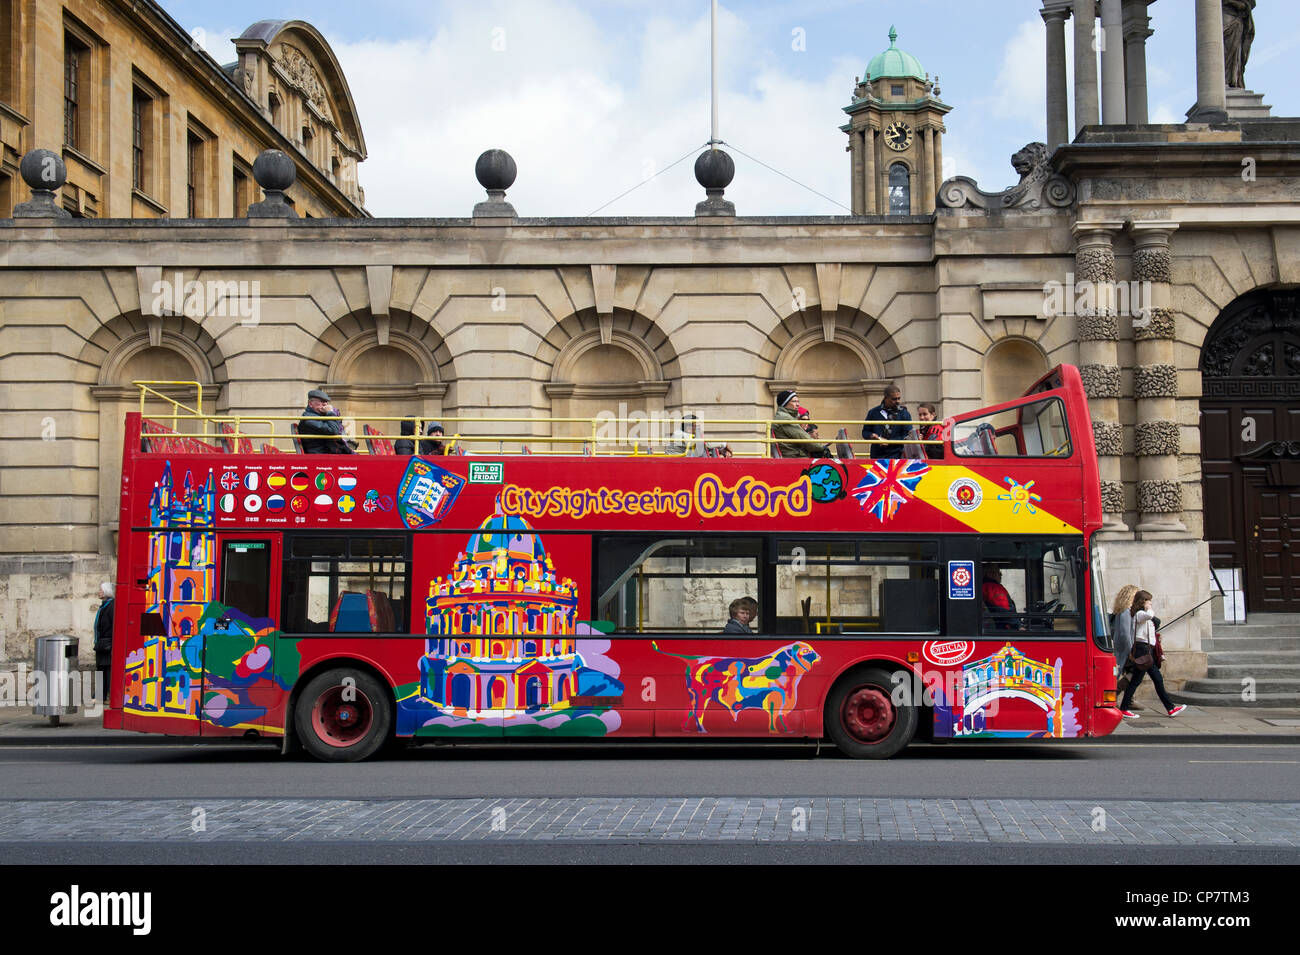 Oxford sightseeing tour bus in front of Queens college, Oxford, England - Stock Image